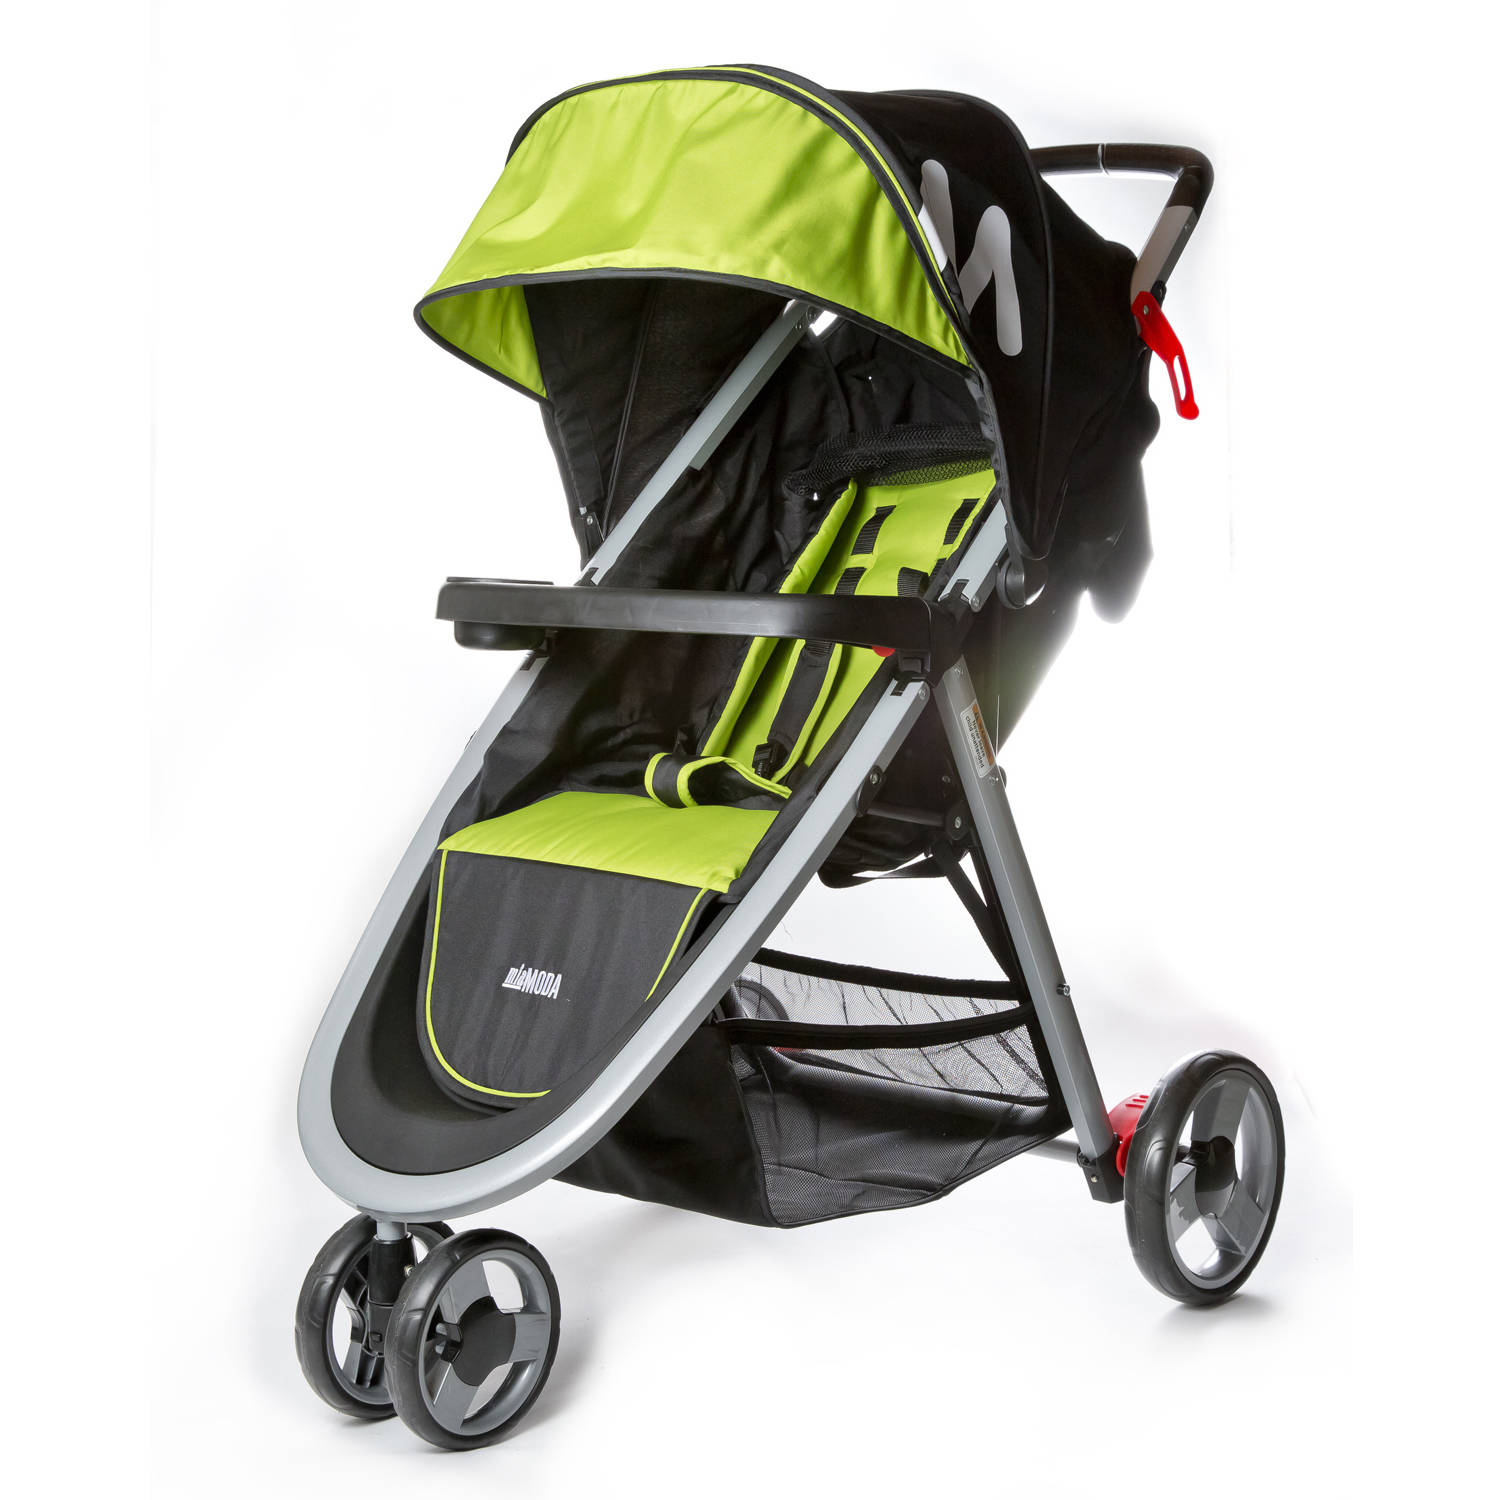 Mia Moda Elite Baby Jogging Stroller, Multiple Colors